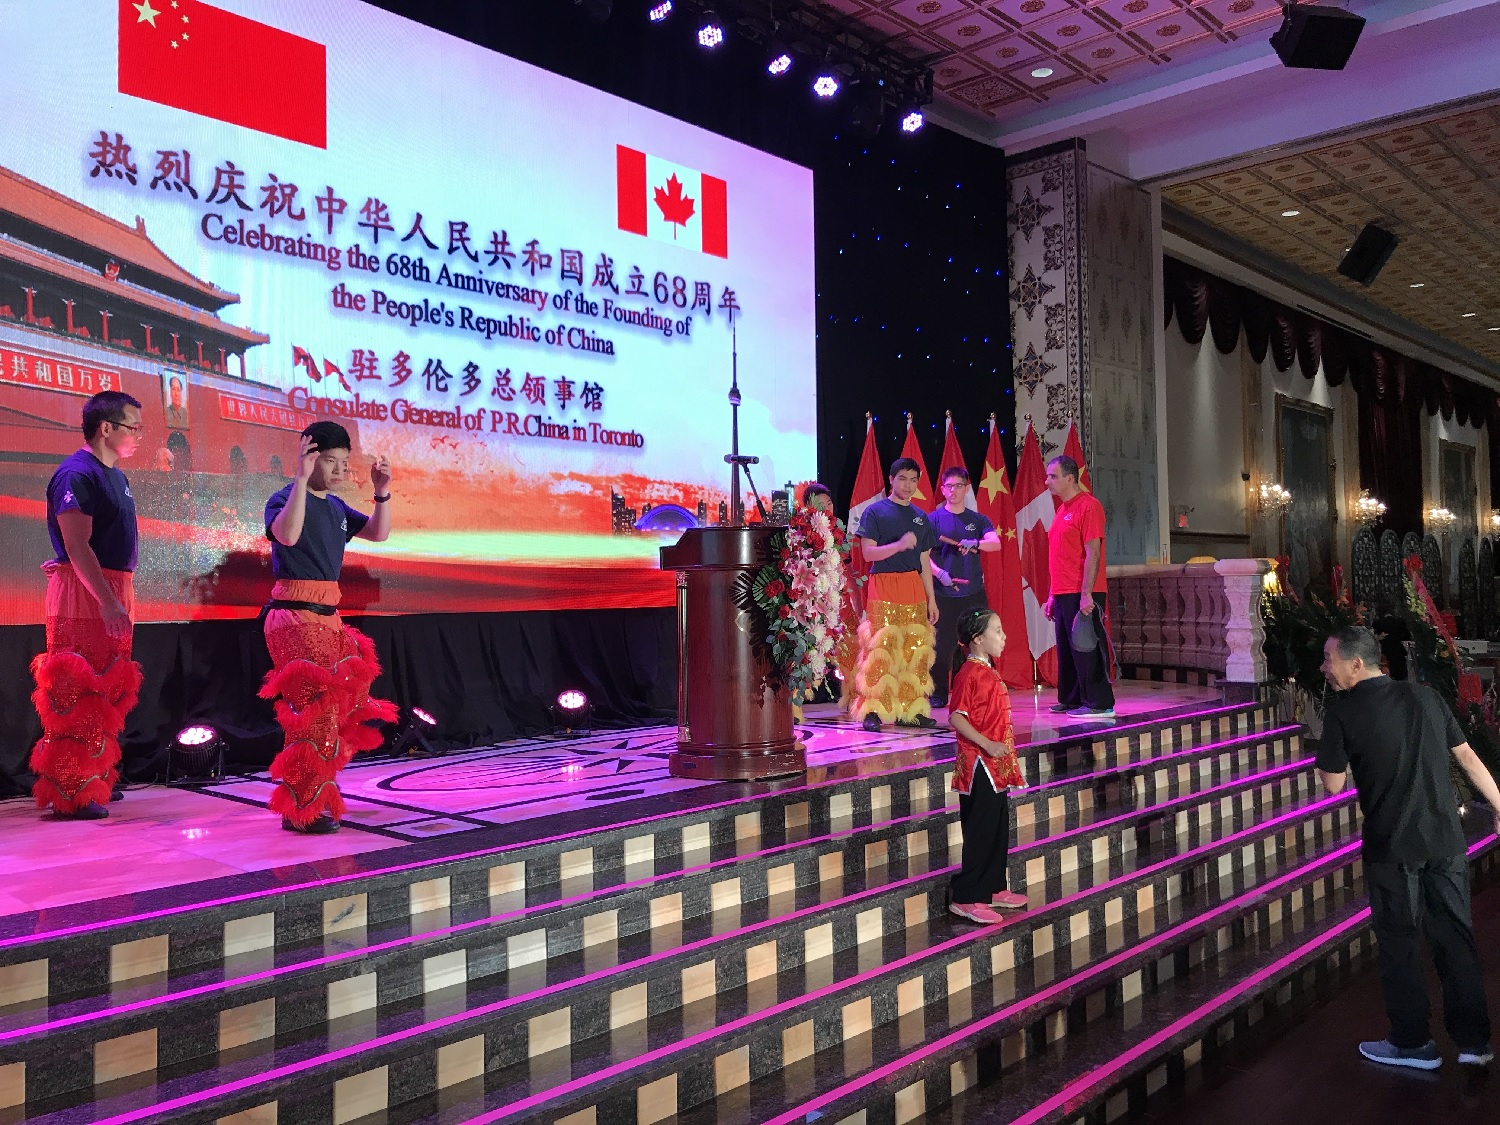 wayland-li-wushu-lion-dance-markham-toronto-chinese-consulate-national-day-2017-3.jpg